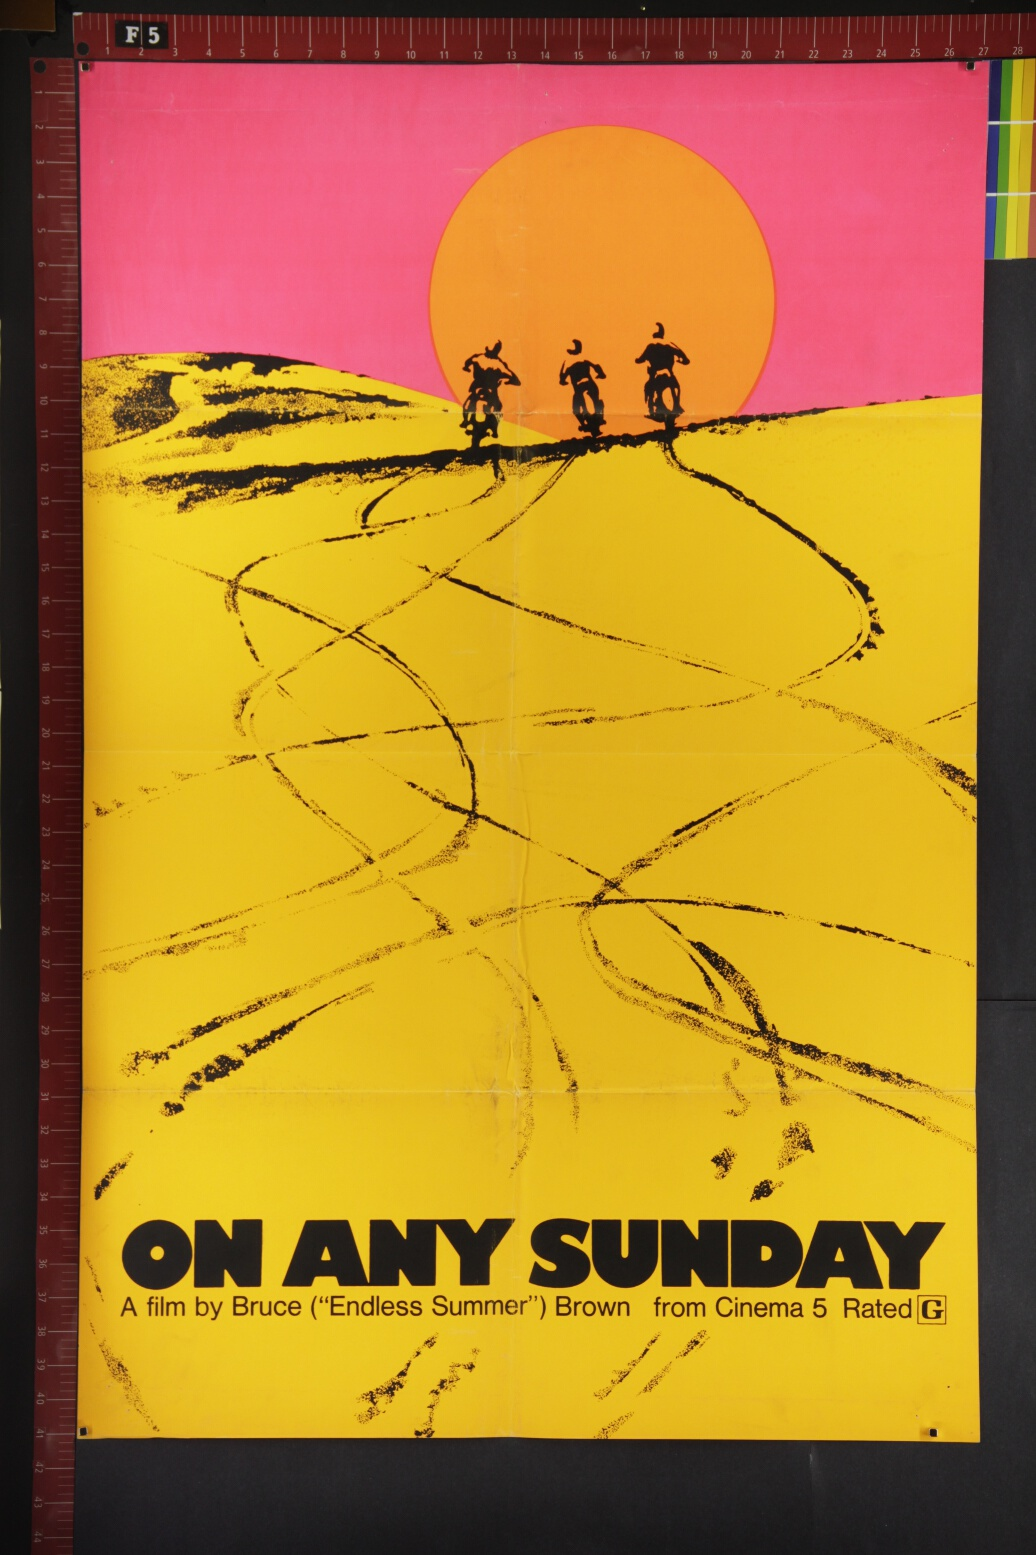 on-any-sunday-arthouse-documentary-sports-rare-original-movie-poster